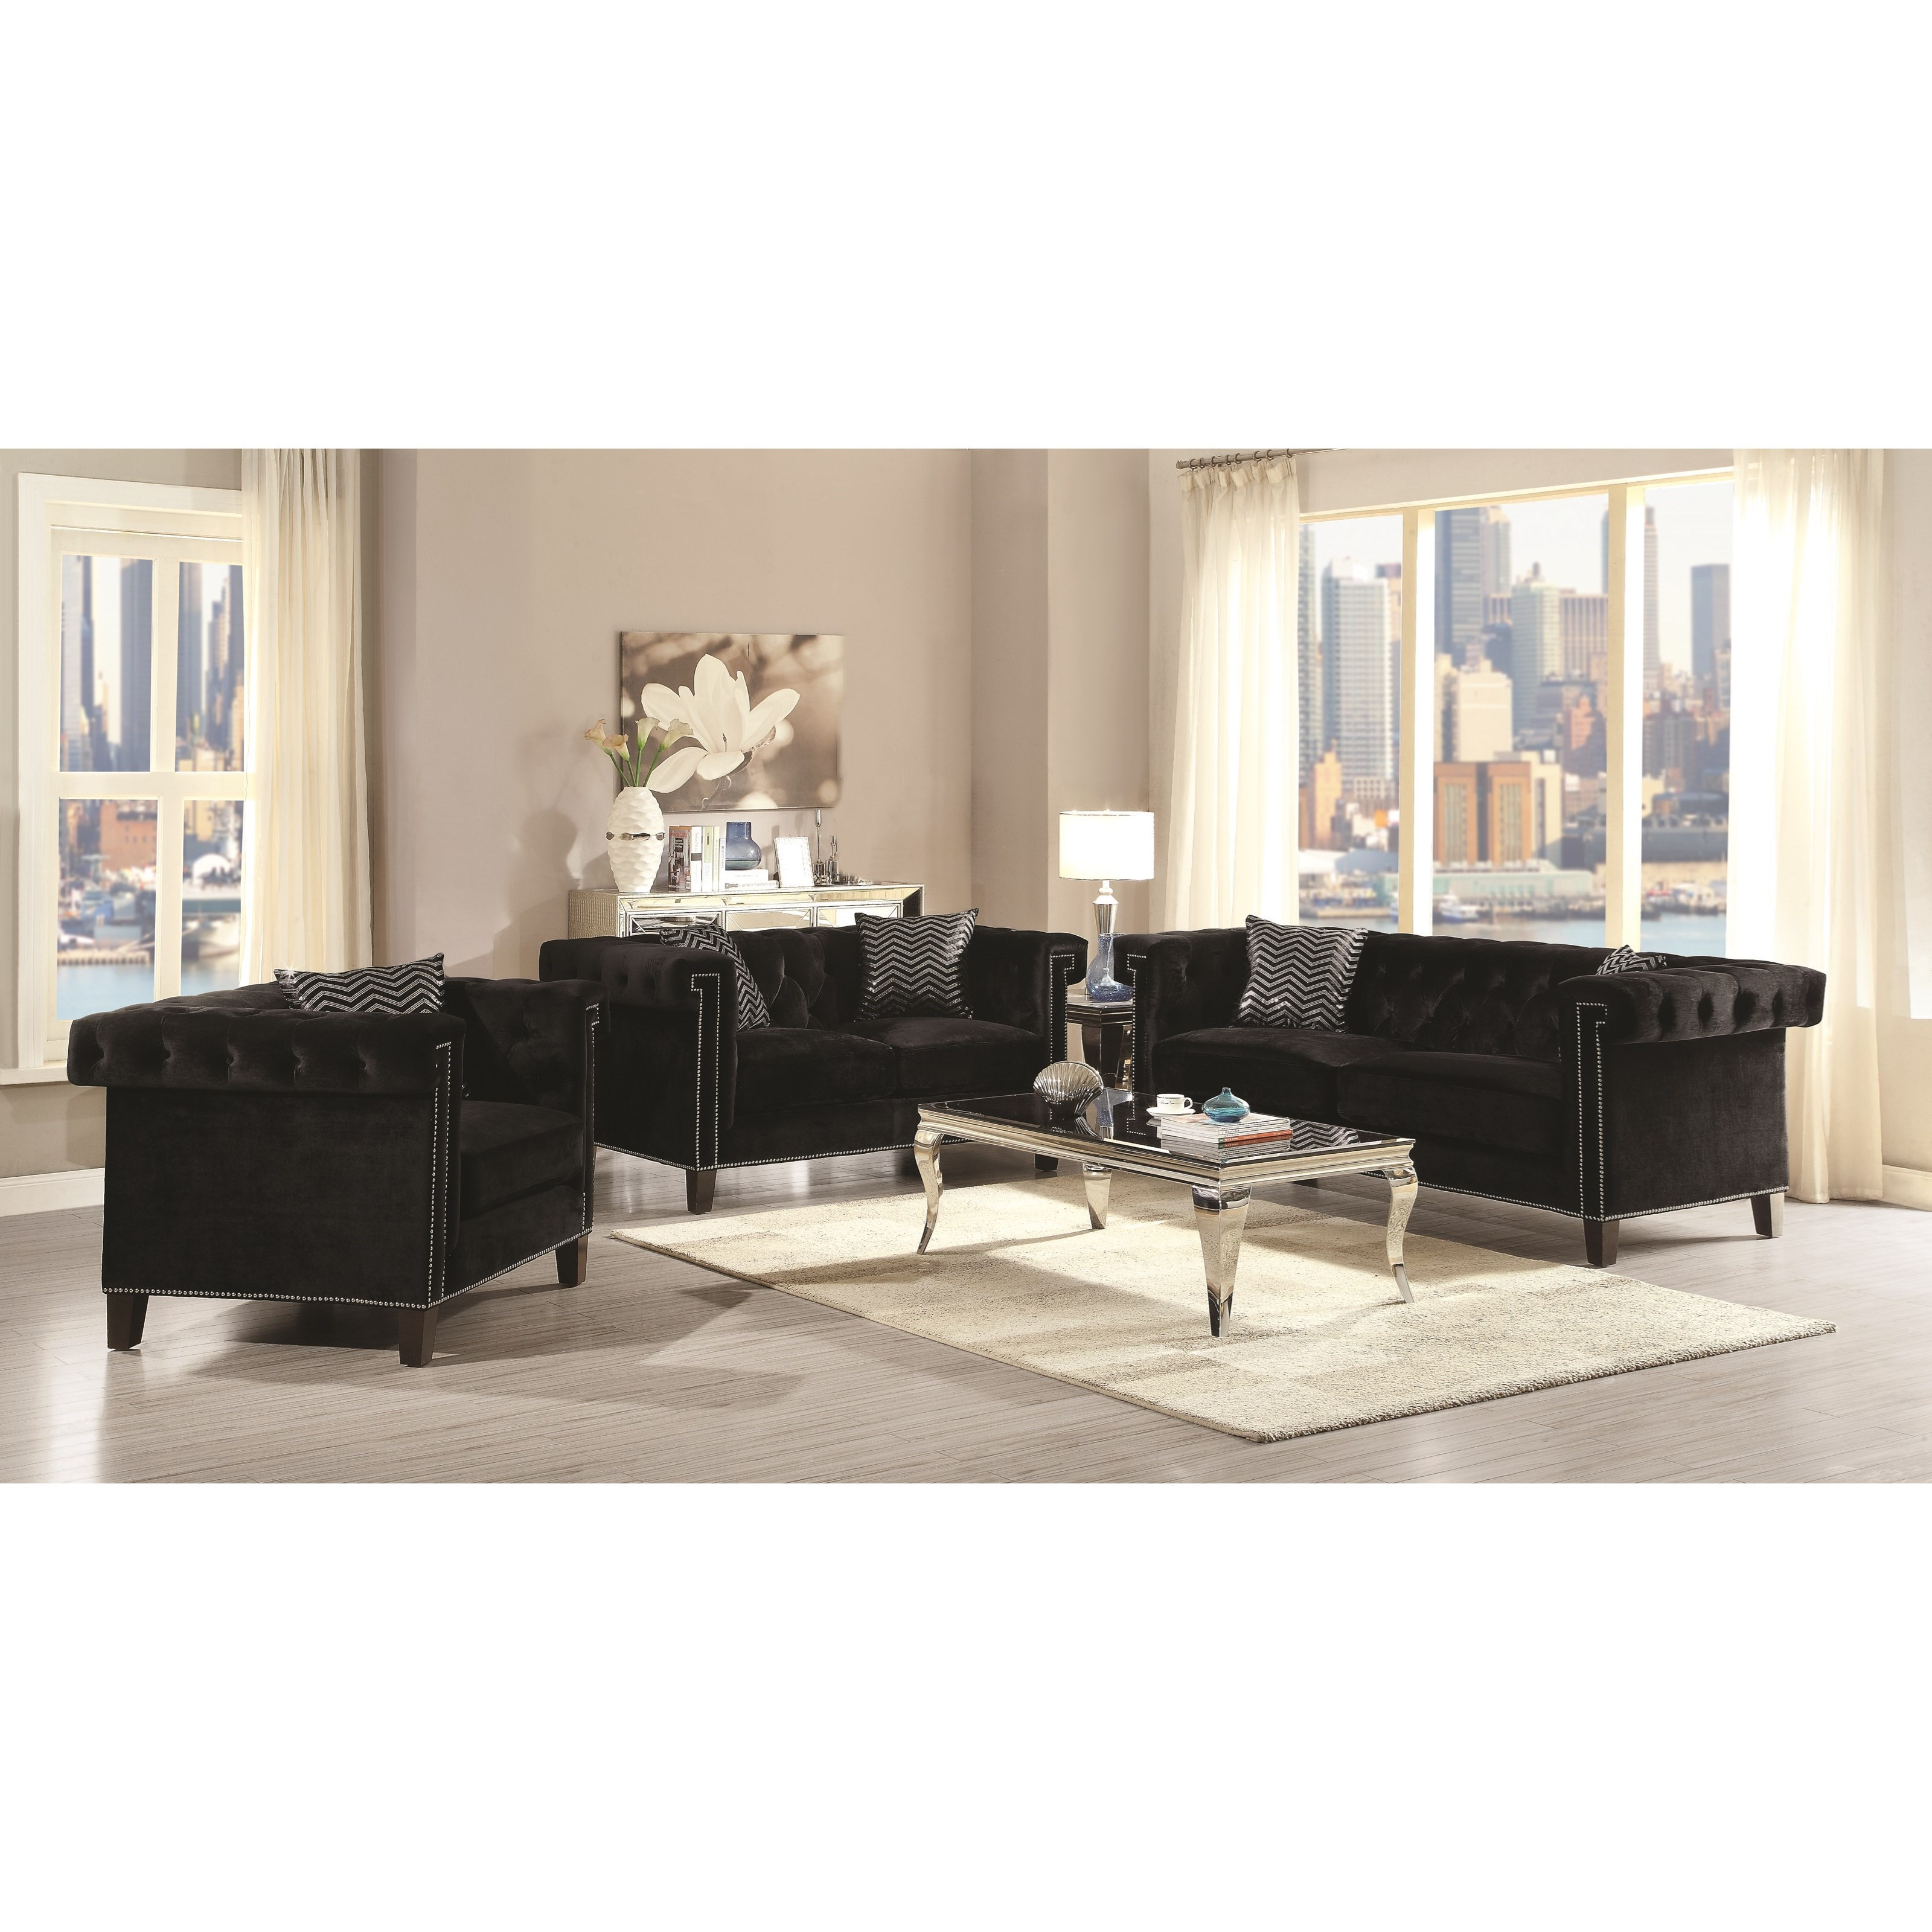 Reventlow Living Room Group by Coaster at Northeast Factory Direct